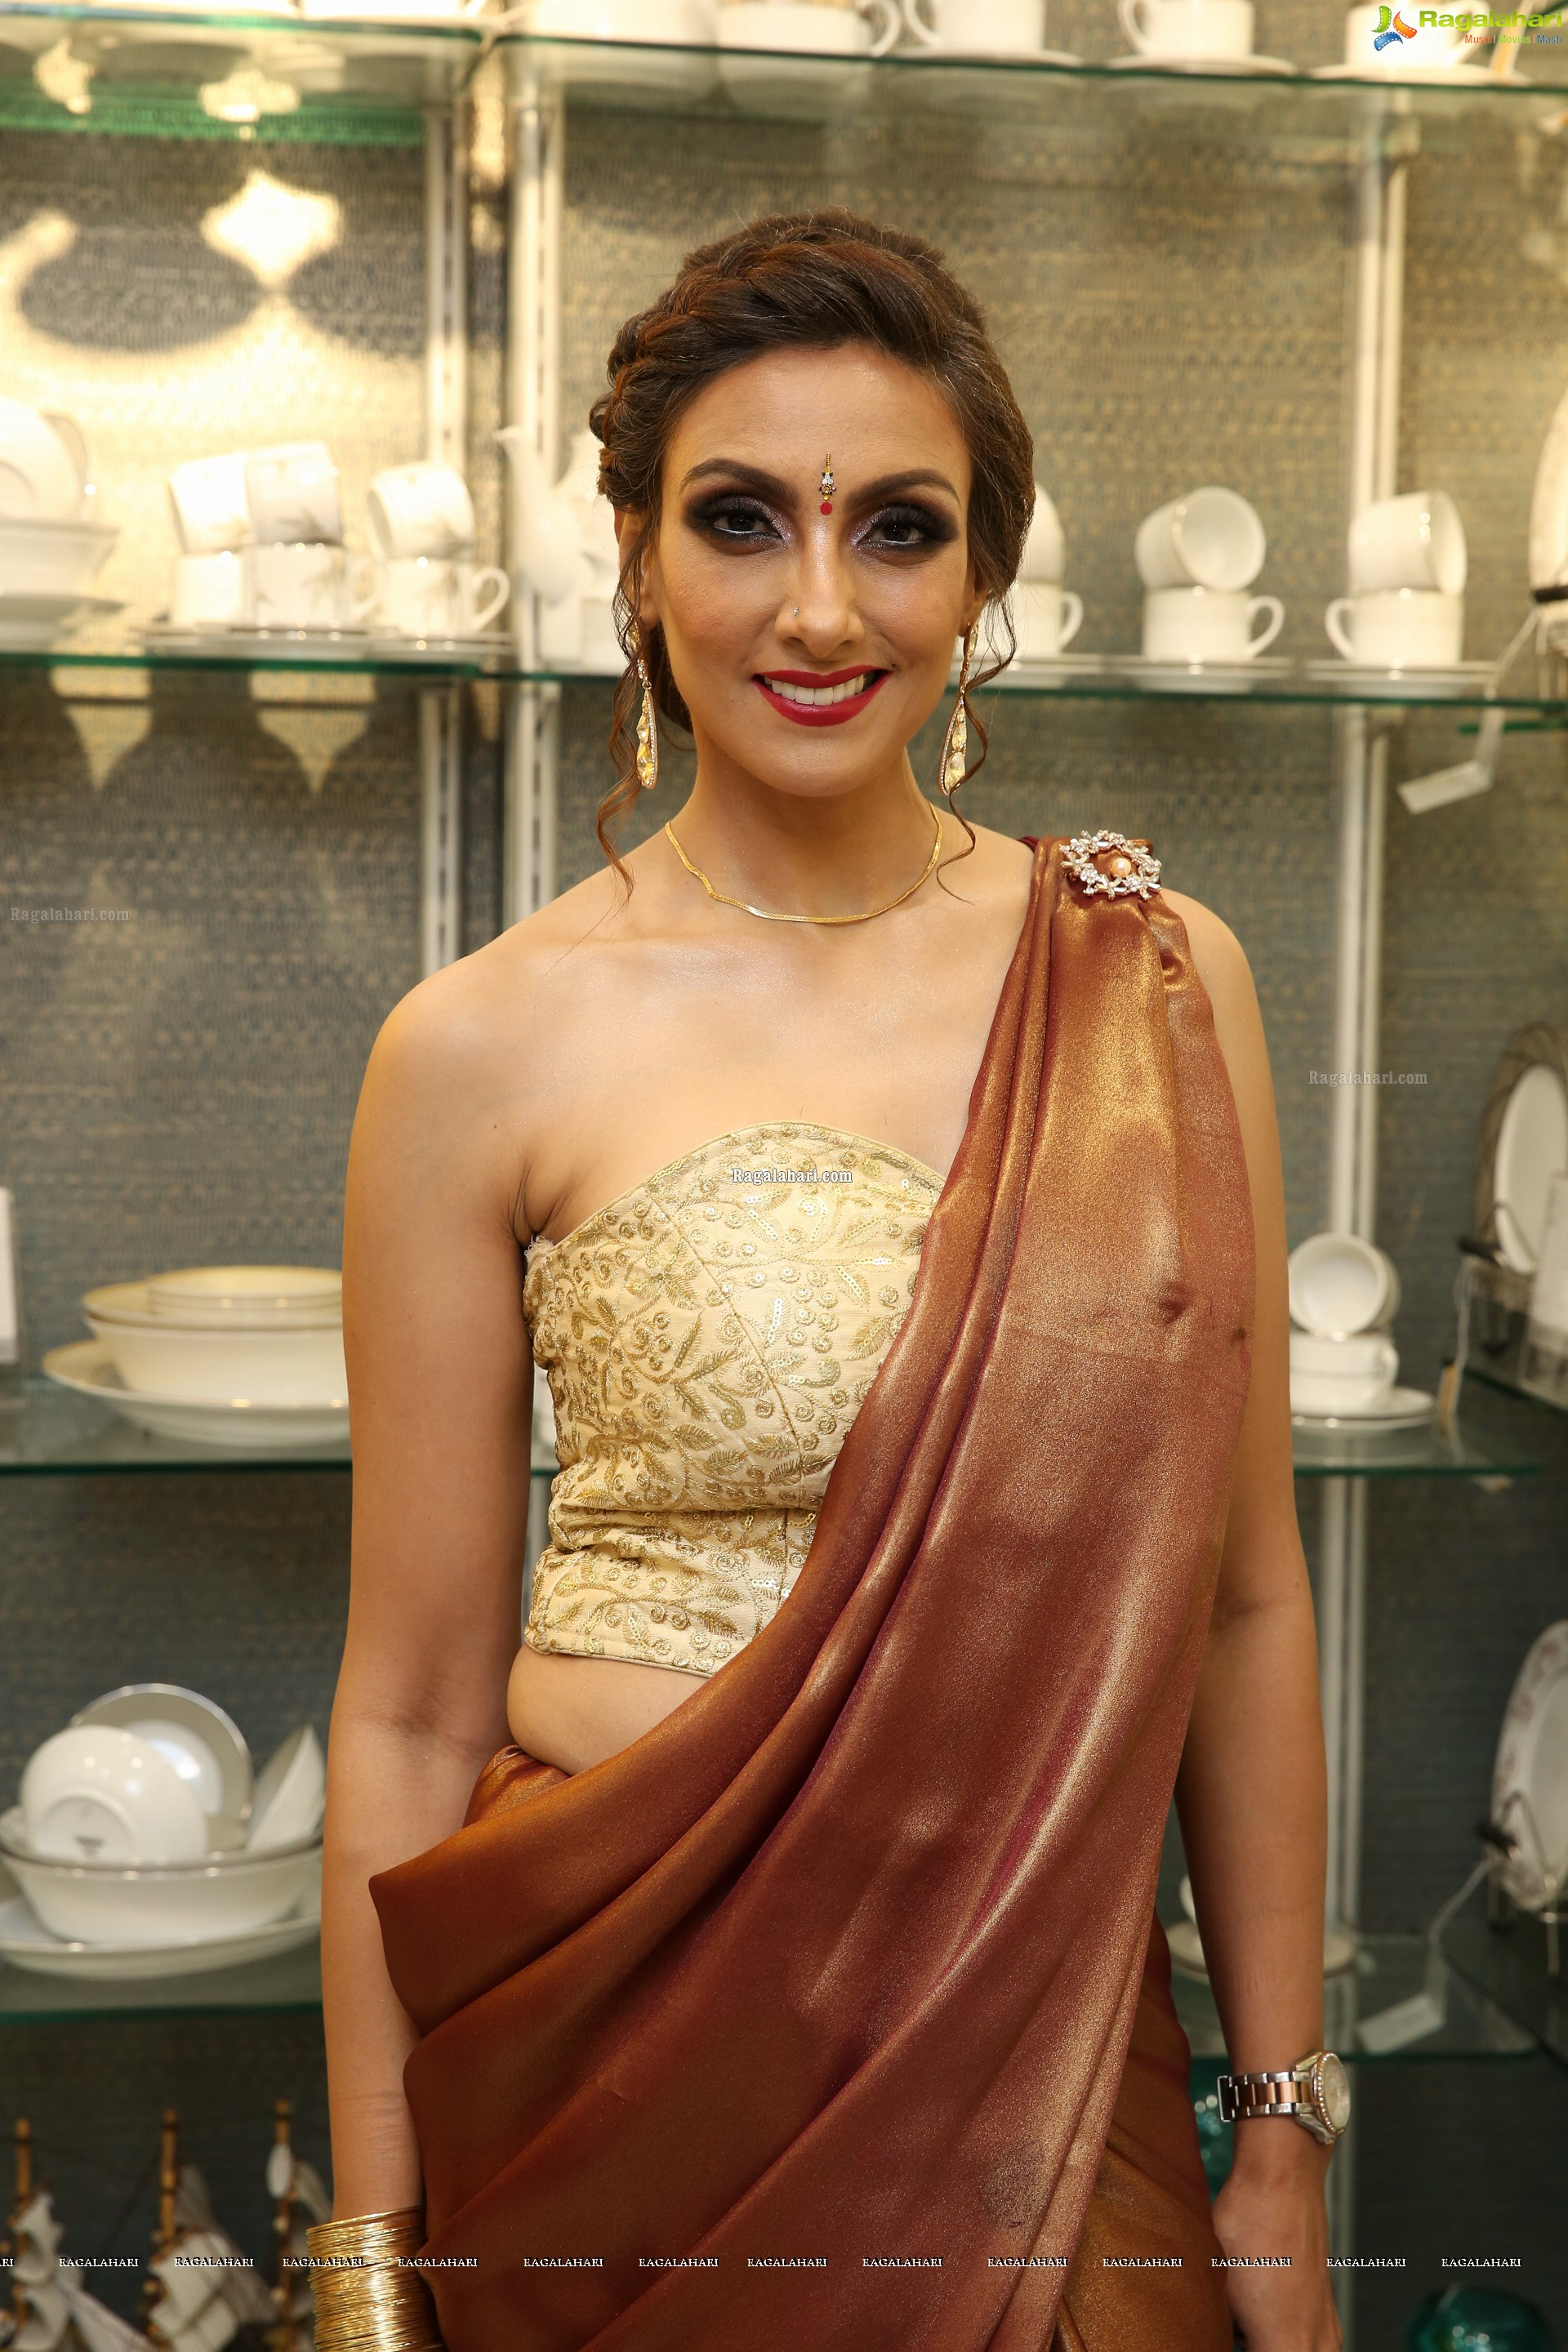 Pallavi Walia Raj @ Darpan Furnishings Store Launch - HD Gallery